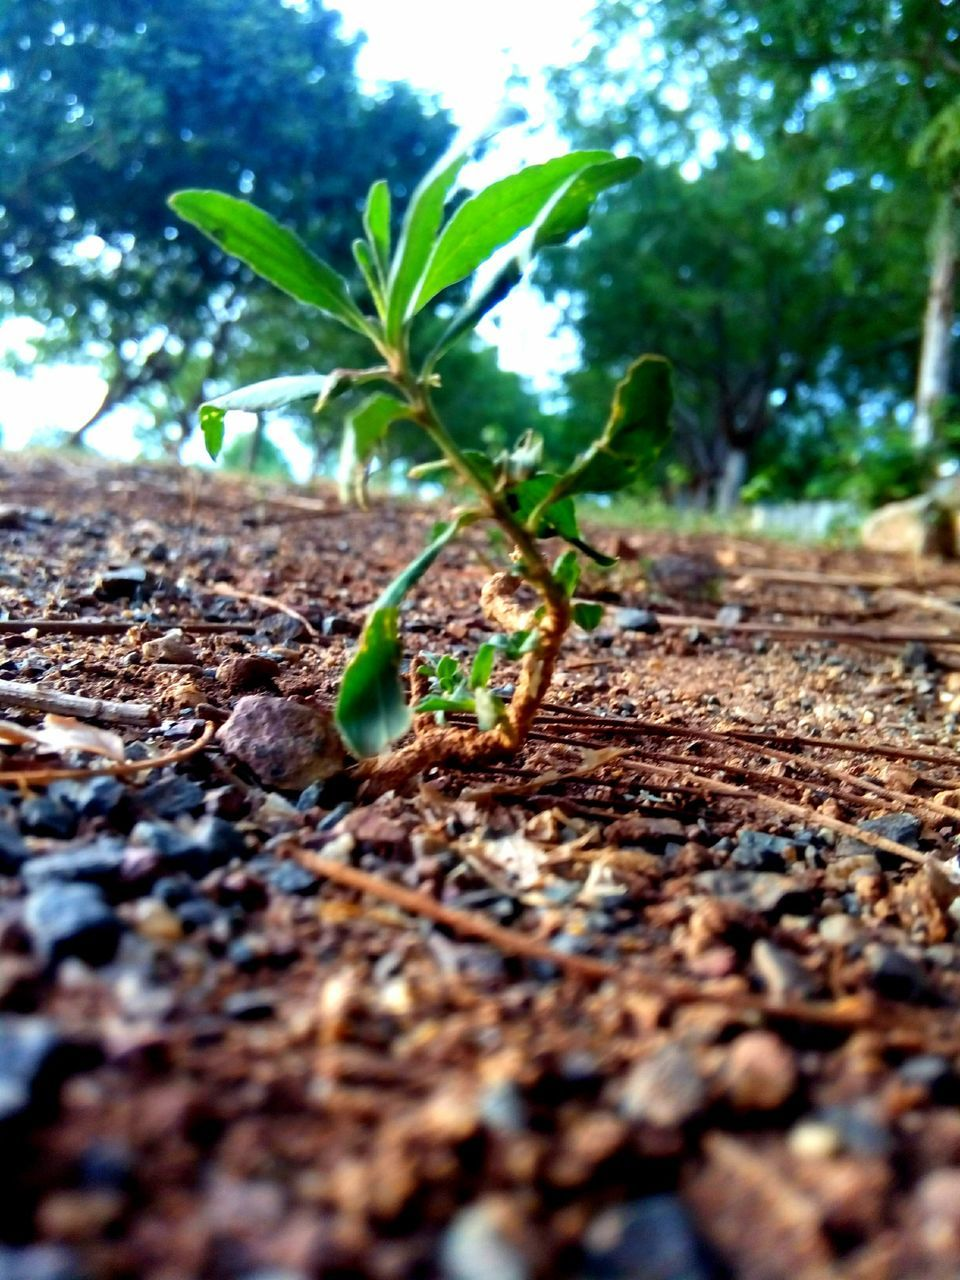 growth, plant, leaf, nature, green color, selective focus, green, no people, day, close-up, outdoors, fragility, beauty in nature, freshness